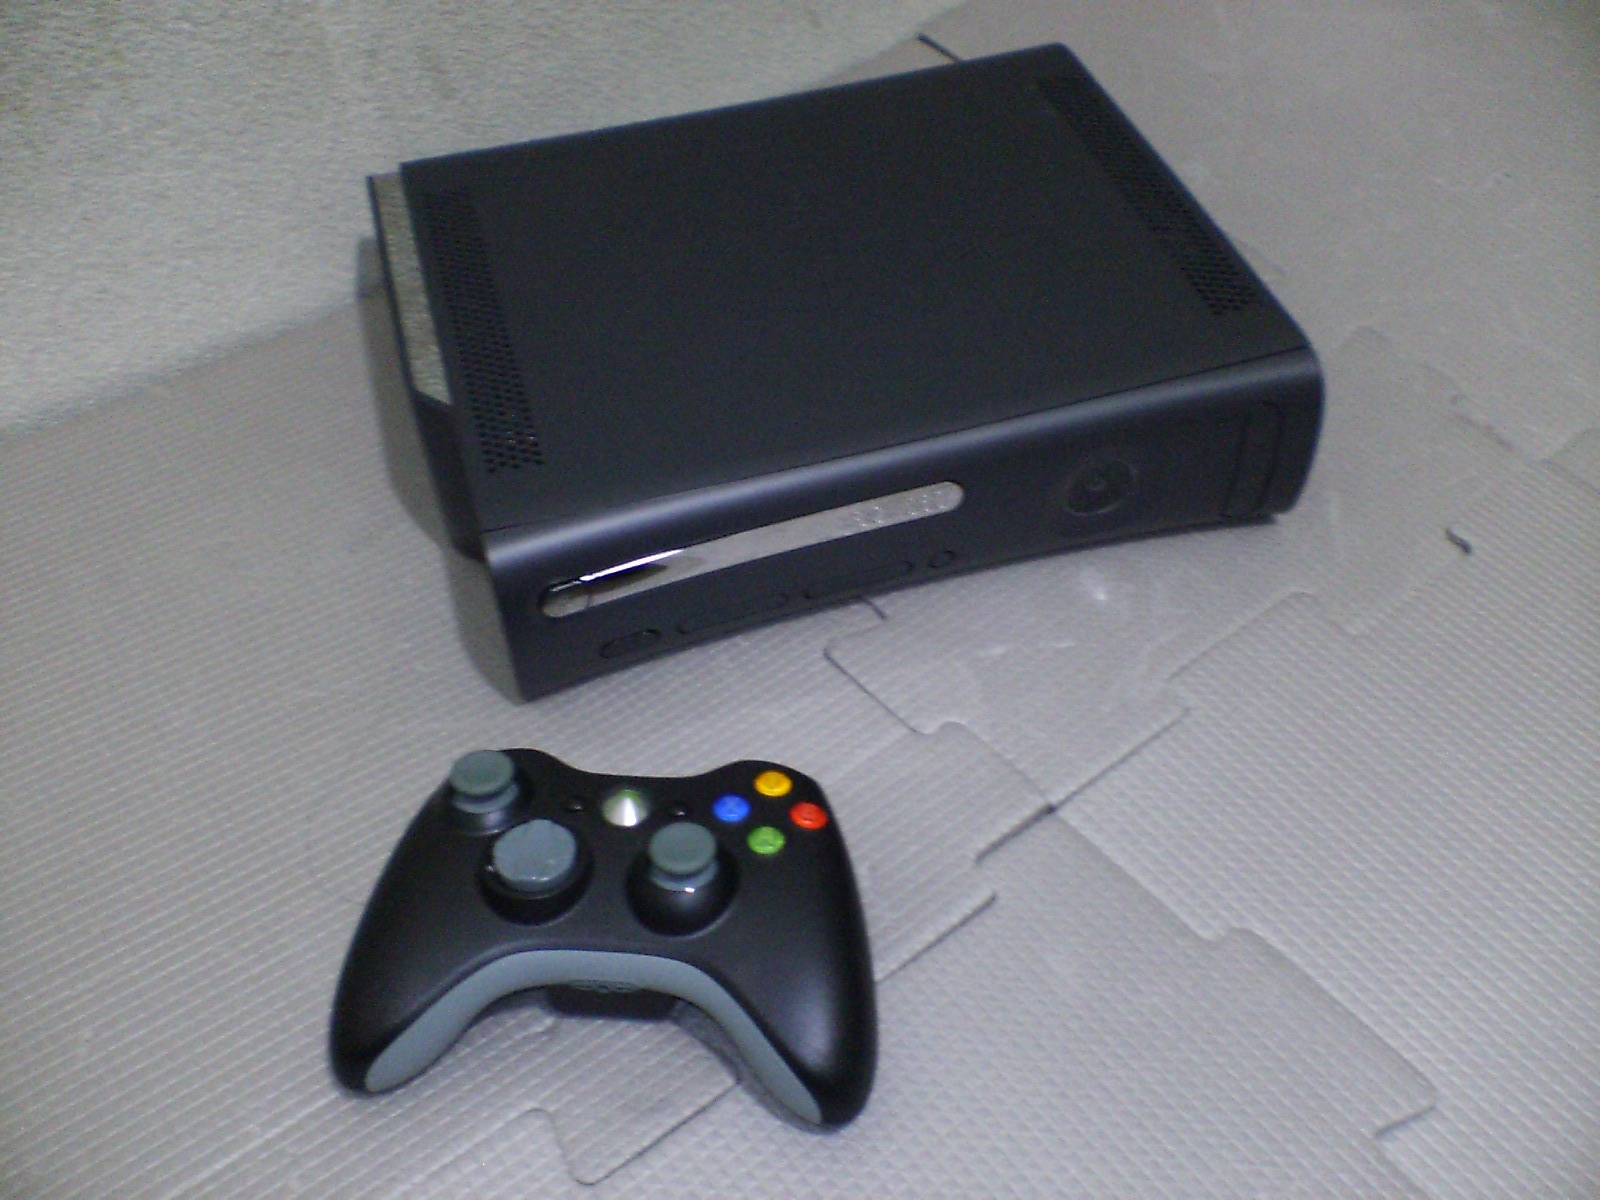 File:Xbox360Elite.jpg - Wikipedia